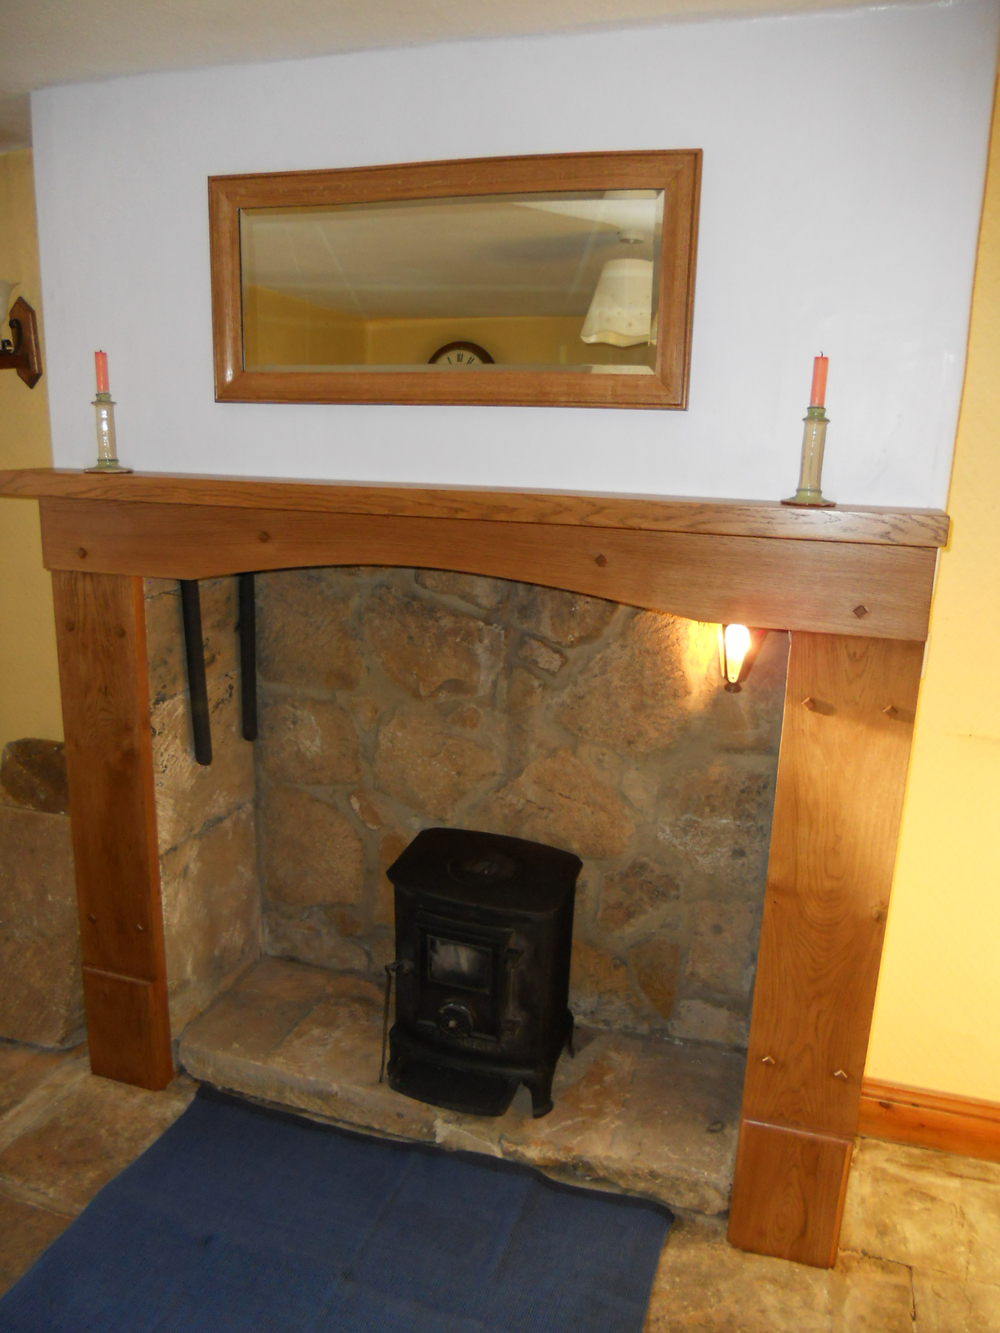 Fire surround & mirror